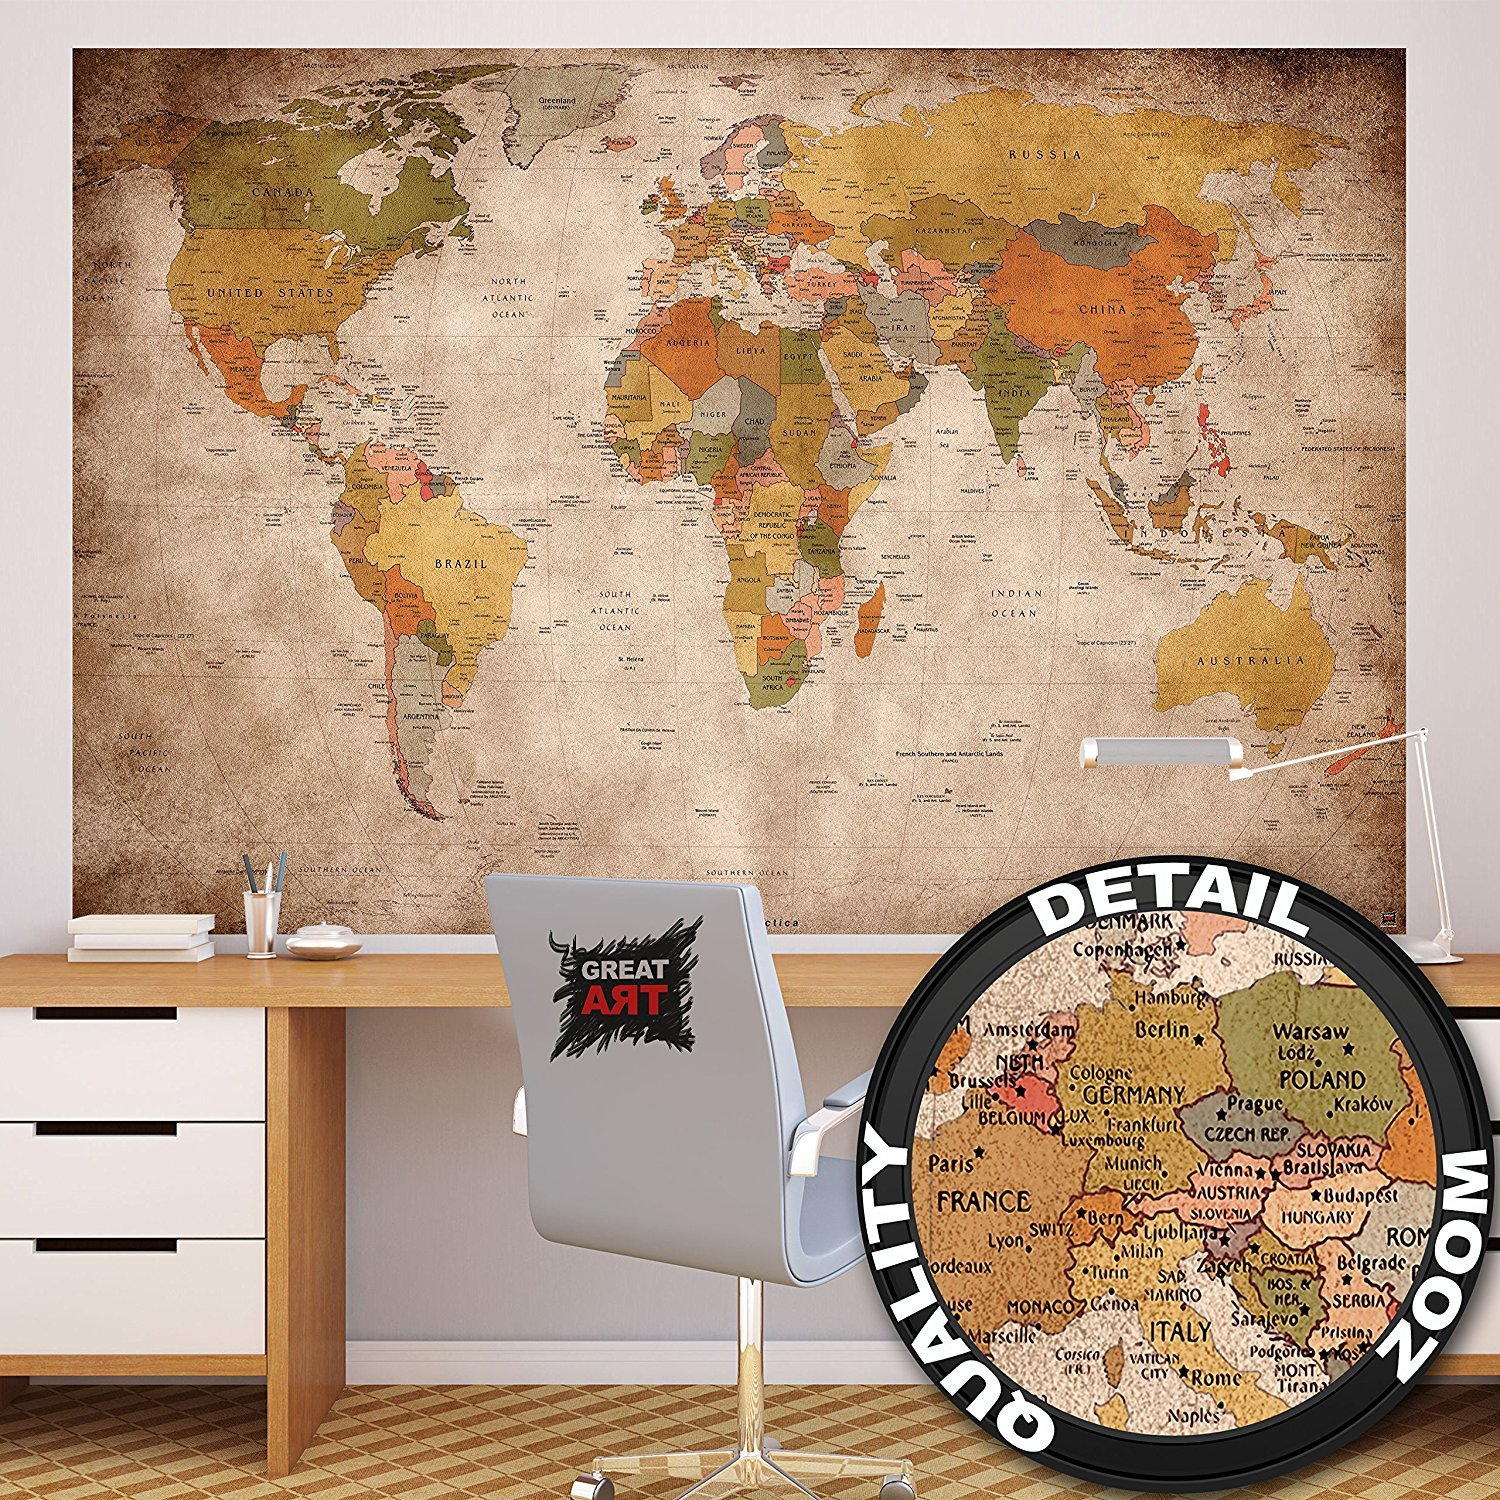 Vintage world map amazon great art photo wallpaper vintage world map quirky retro wall picture xxl wall map 210 gumiabroncs Gallery